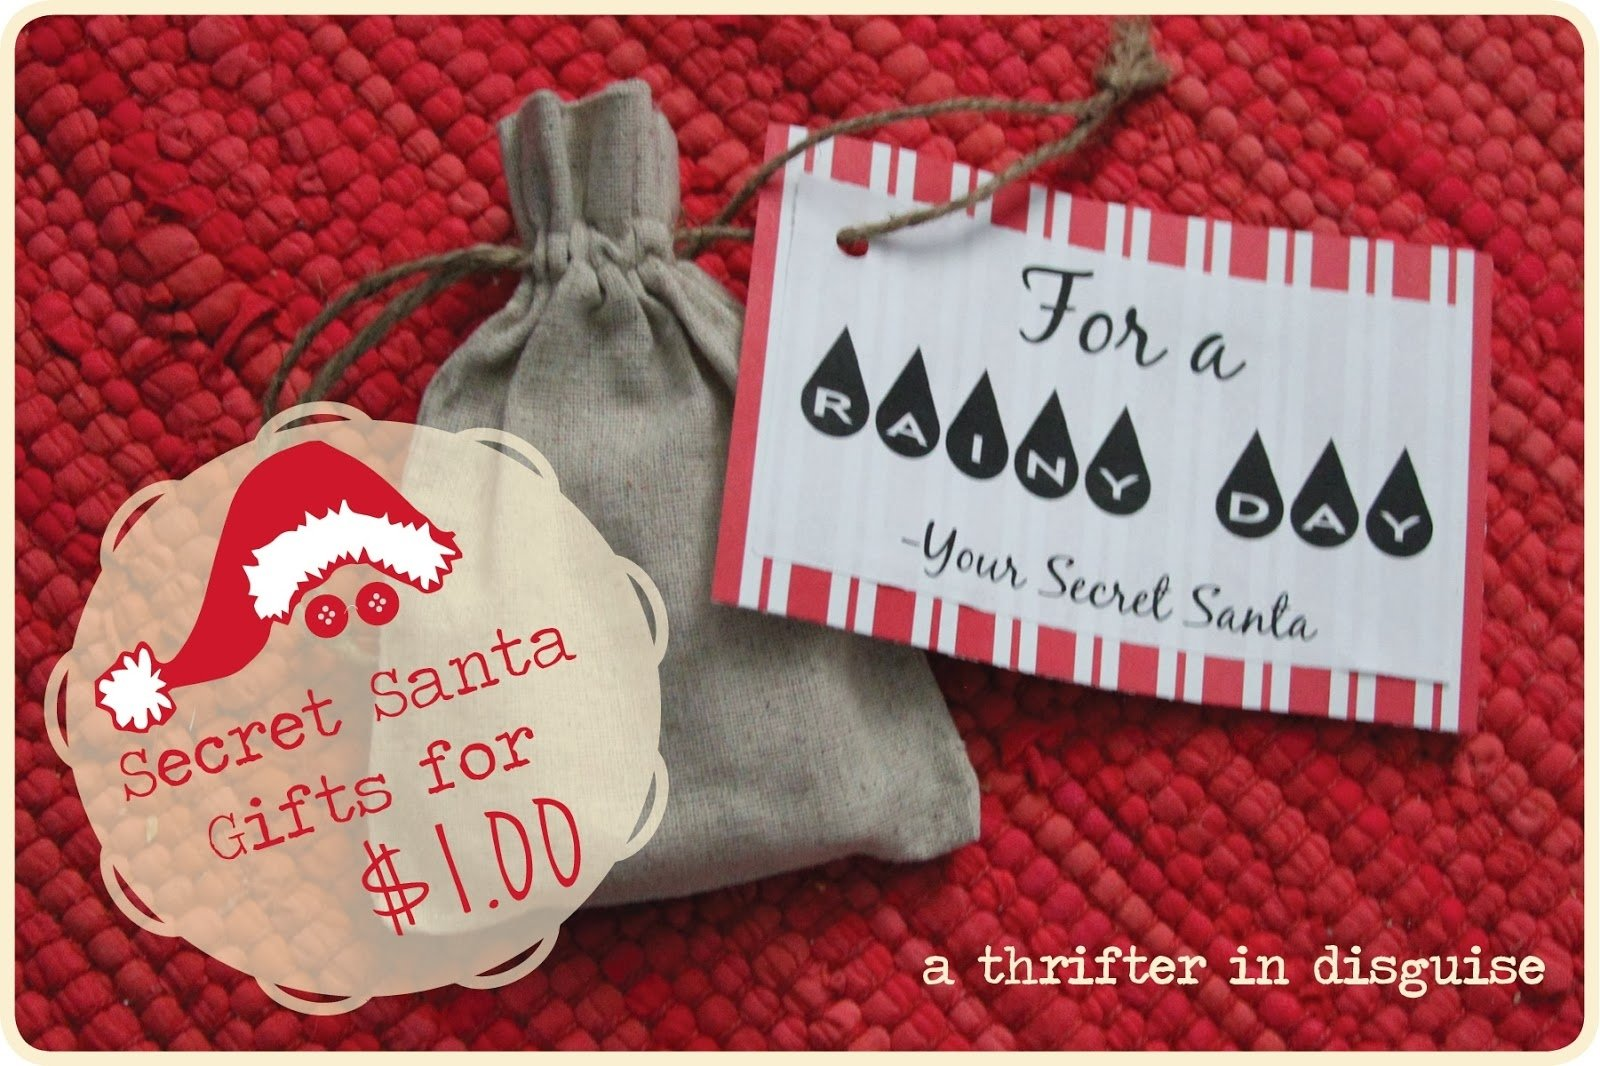 10 Most Recommended Secret Santa Ideas For Work a thrifter in disguise secret santa saturday gifts for a dollar 2020